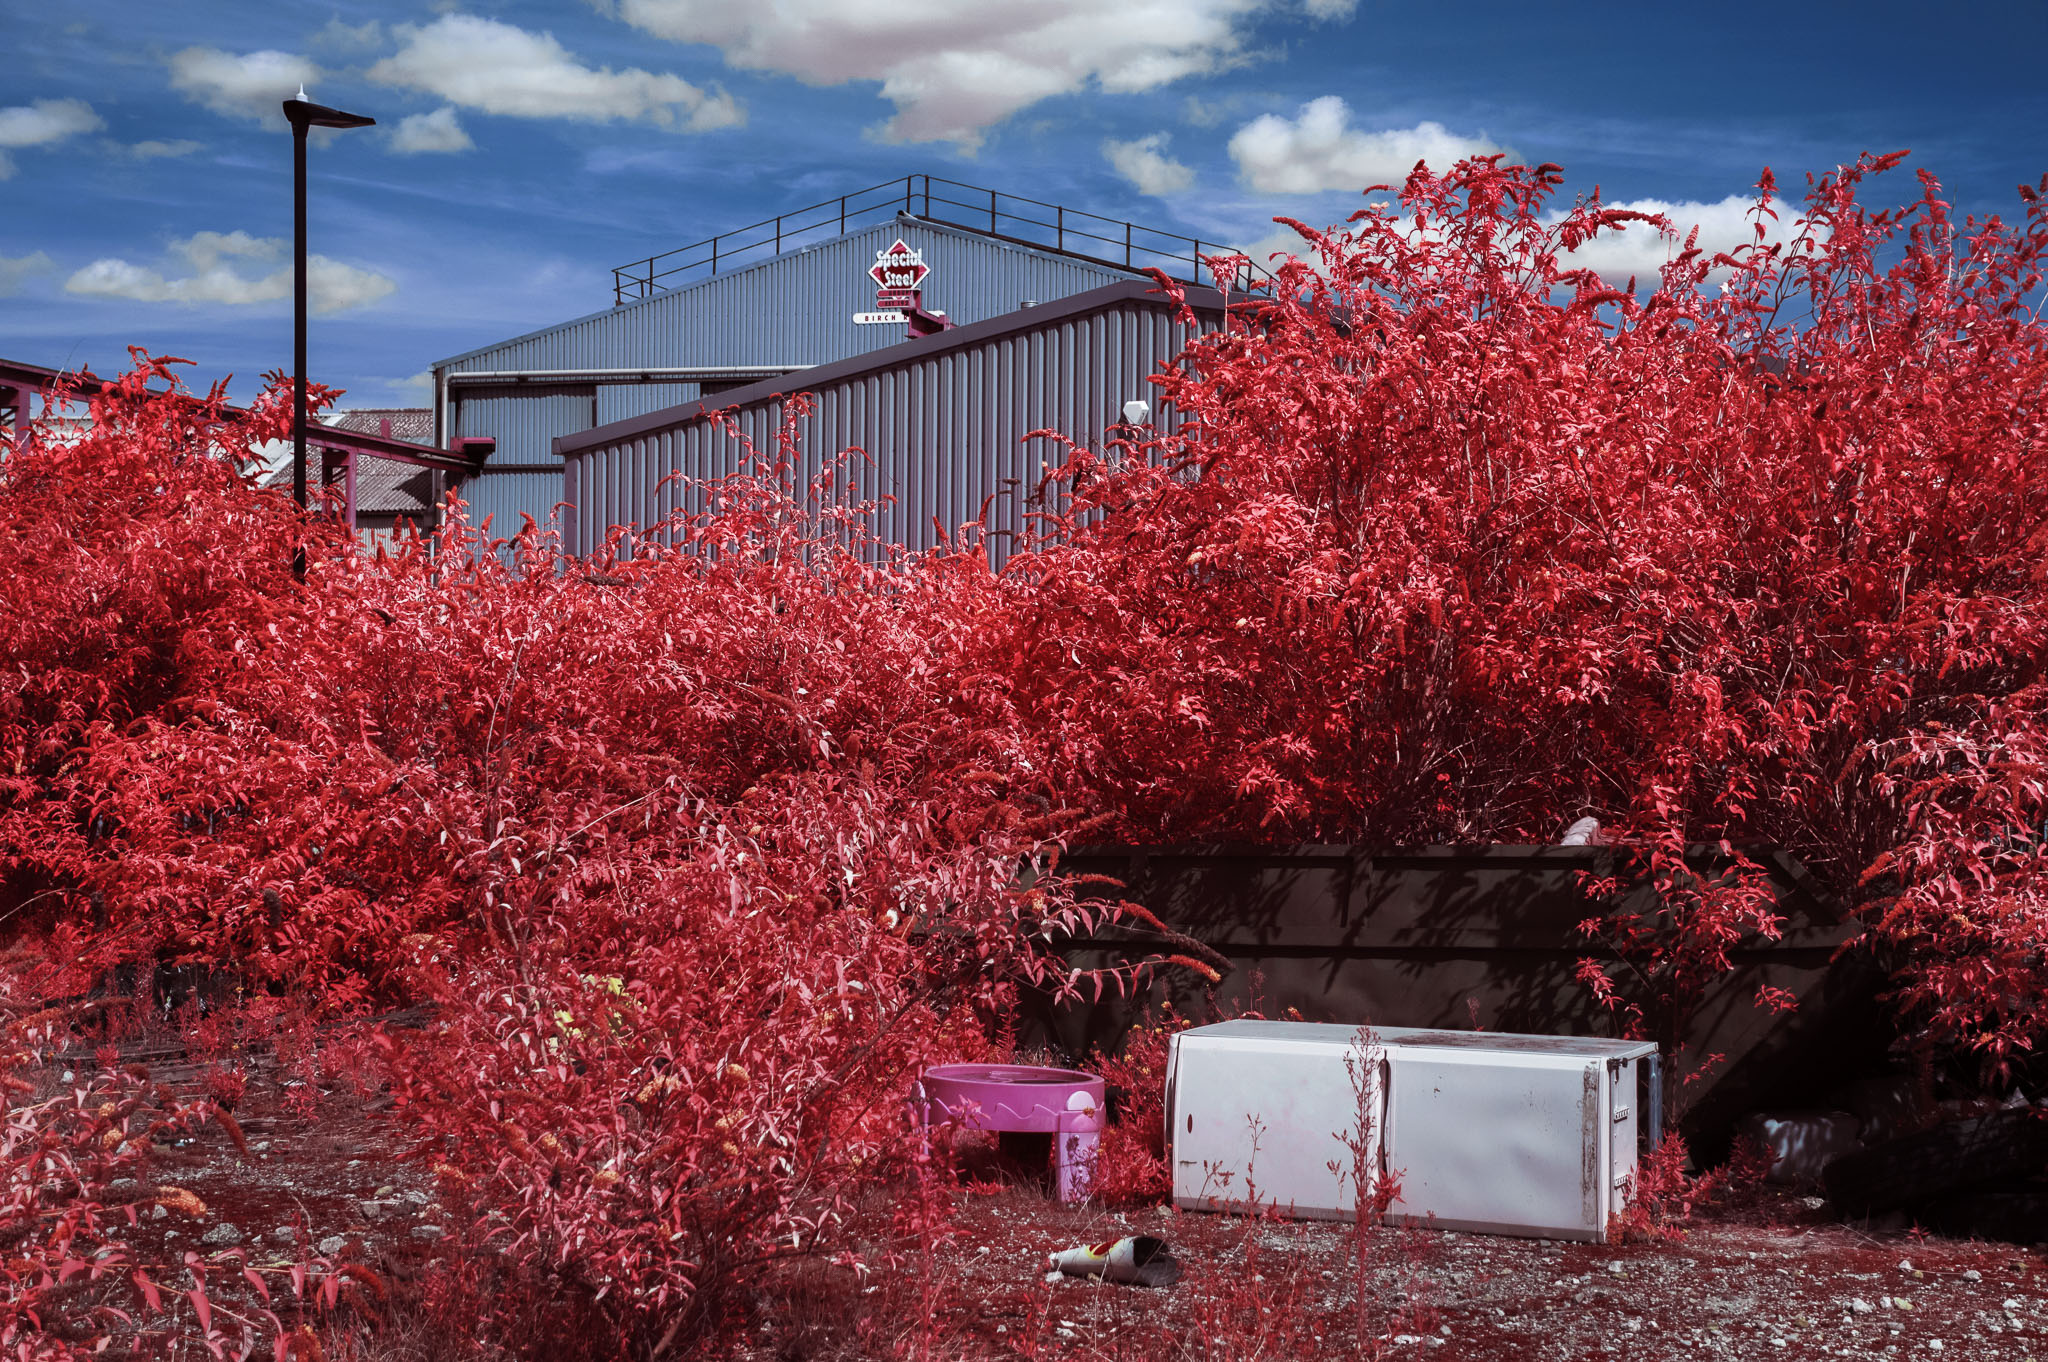 Kodak EIR Colour Infrared, Edgelands, Wasteland, Out of sight, Fridge, Sandpit, Warehouse ©Jonny Sutton